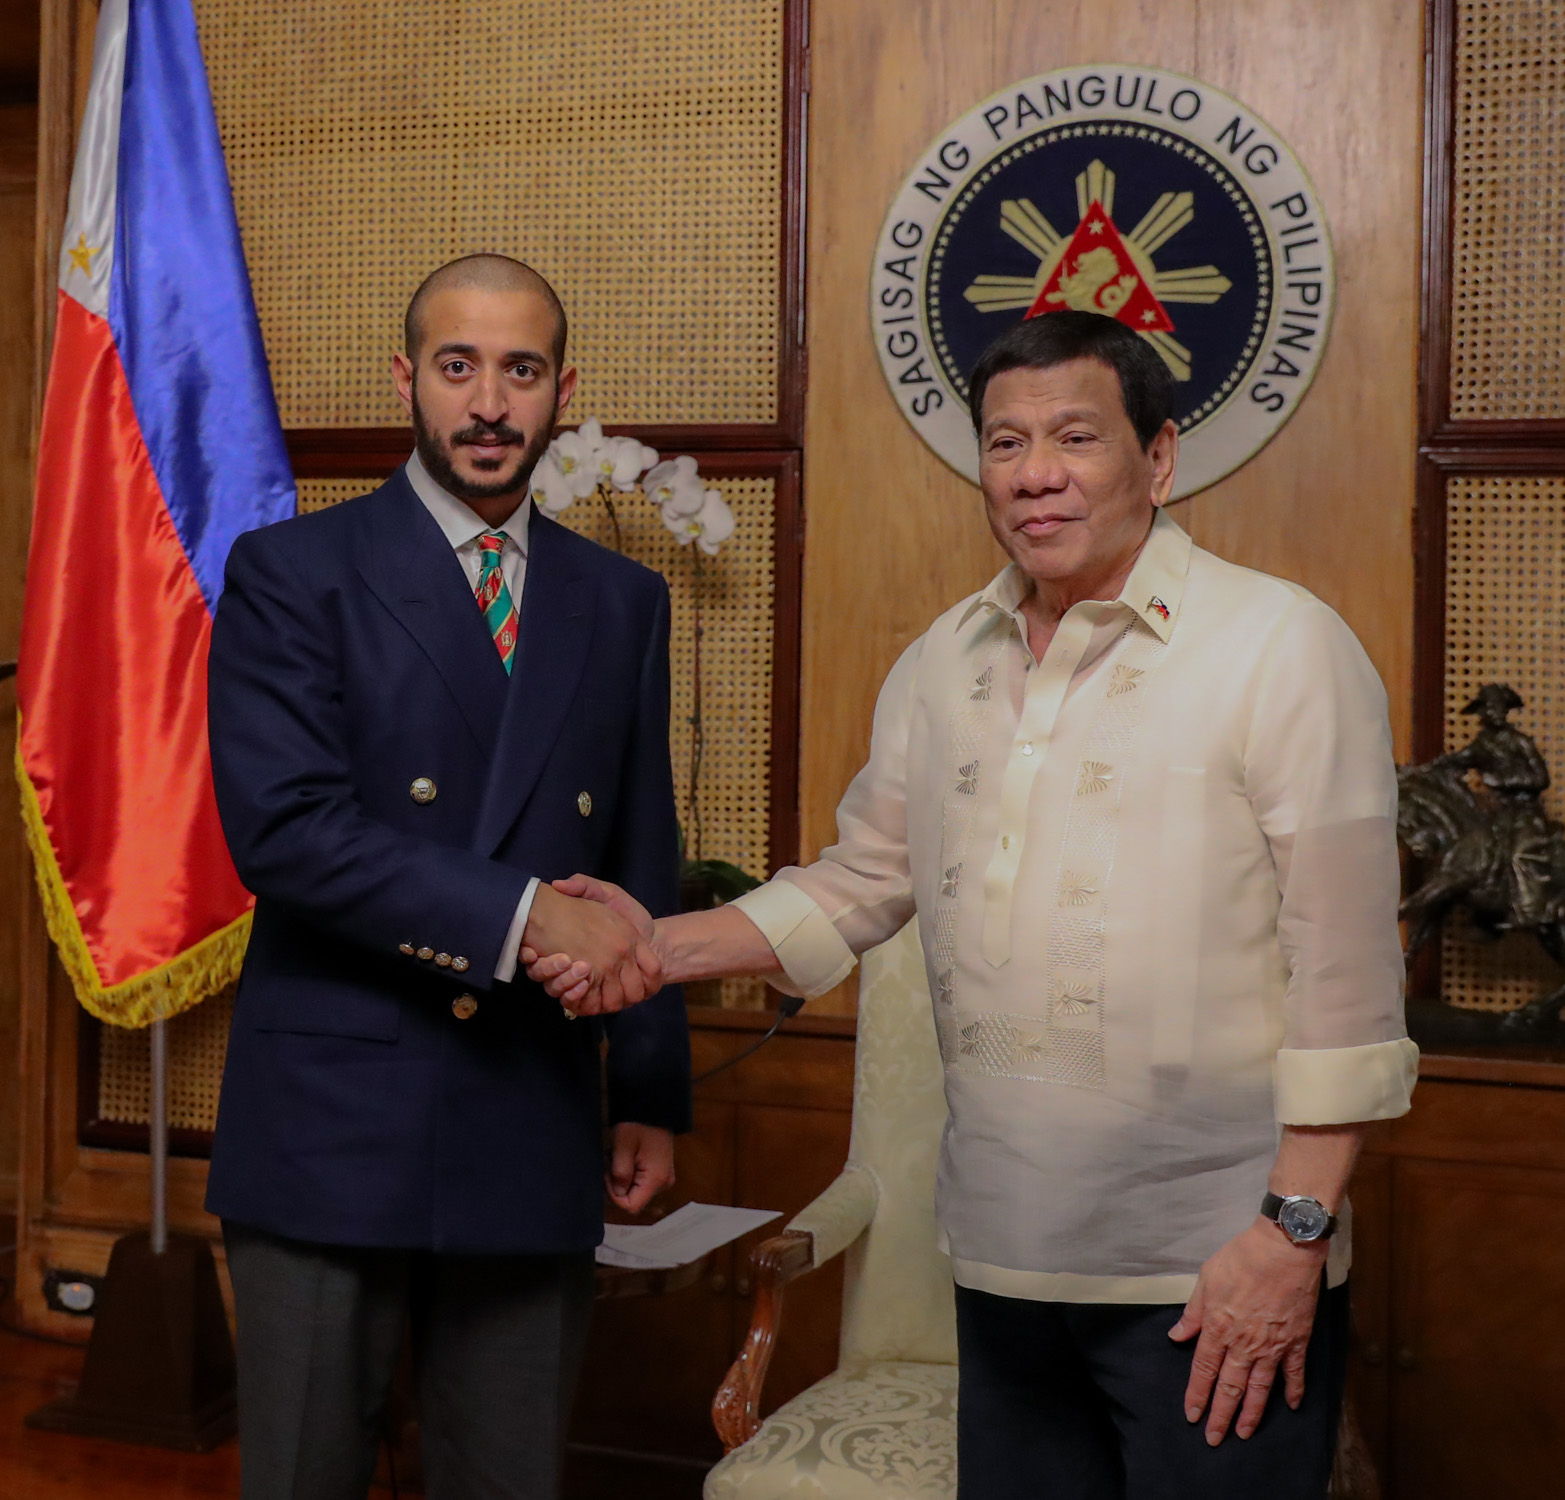 'It develops Bahrain-Philippines ties', President Duterte praises Brave in meeting with Sheikh Khalid -